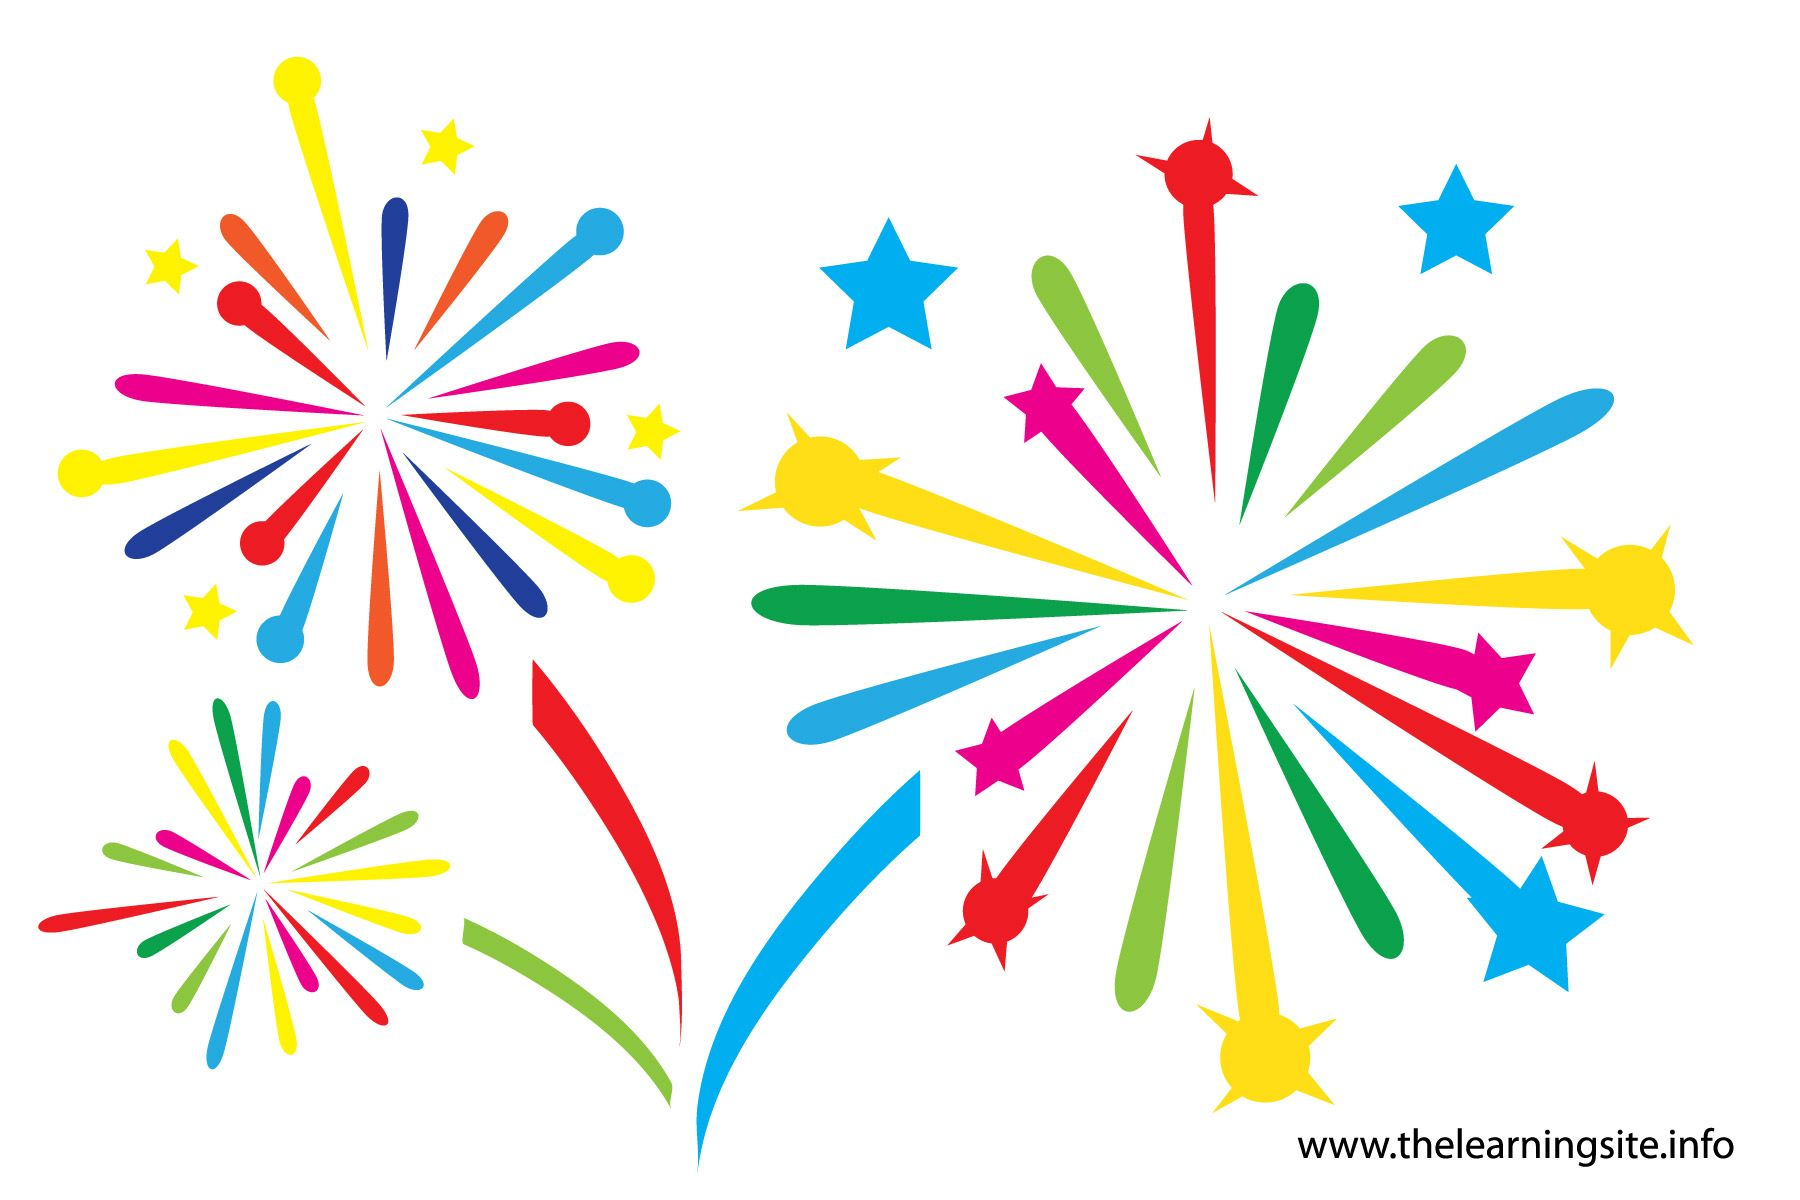 Animated celebration clipart graphic royalty free download Fireworks clip art fireworks animations clipart 2 image #4113 ... graphic royalty free download